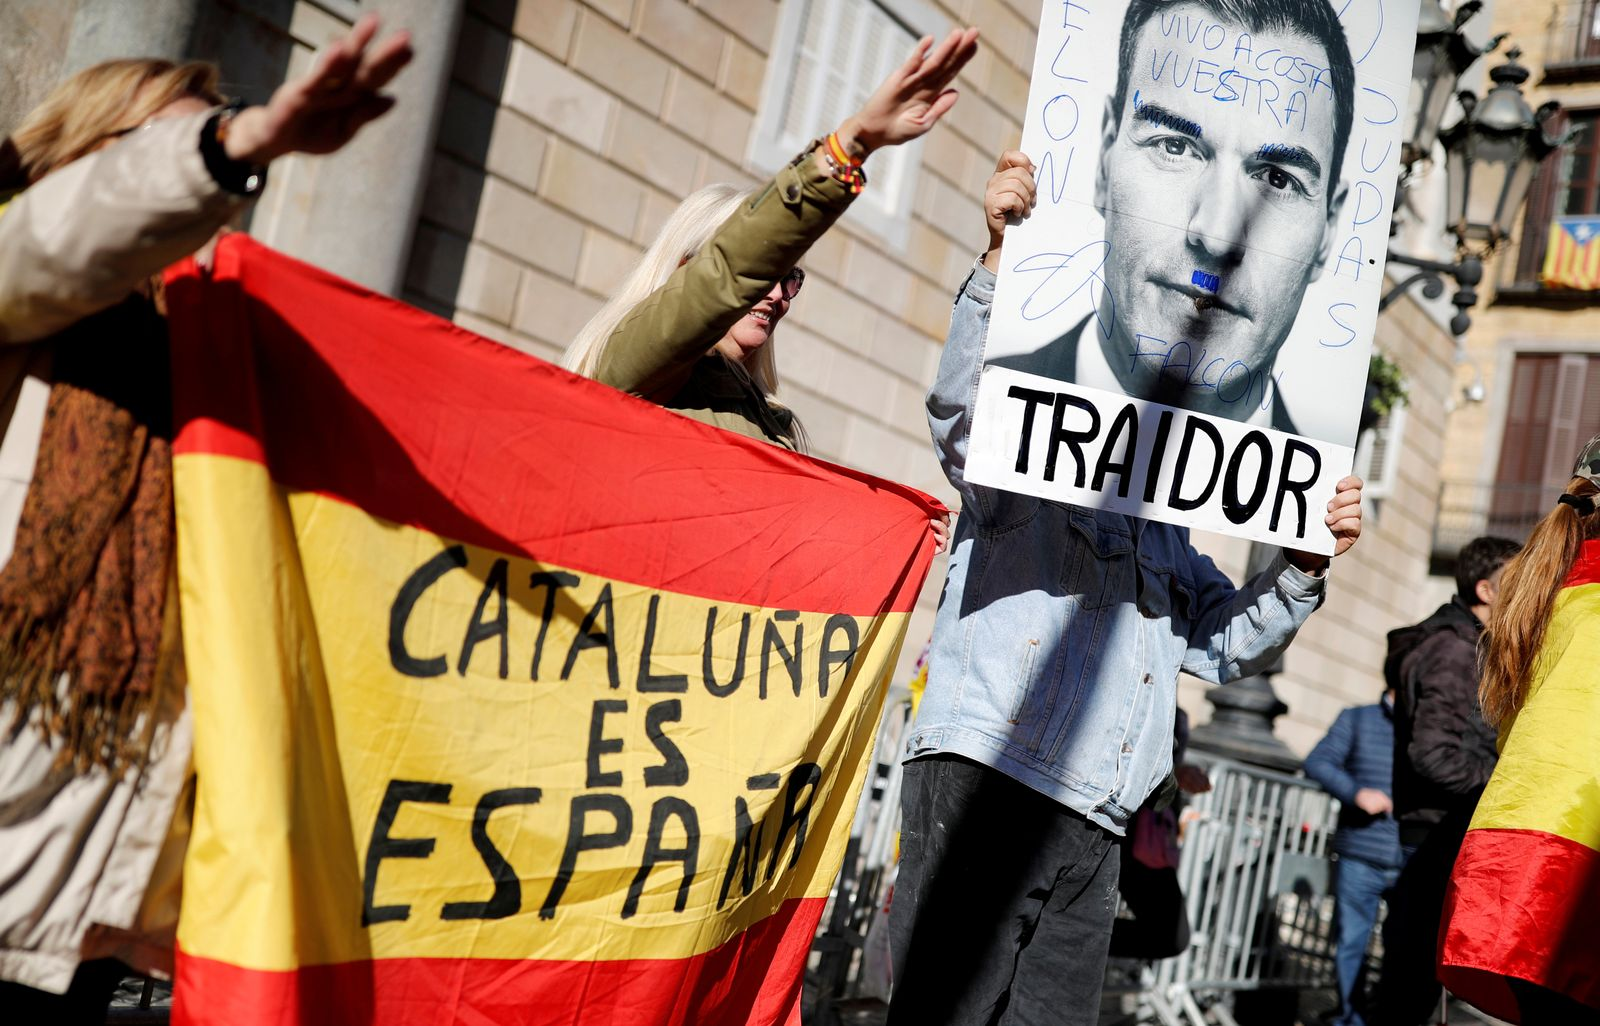 Protest called by far-right party VOX against the new coalition government led by Spain's PM Sanchez in Barcelona